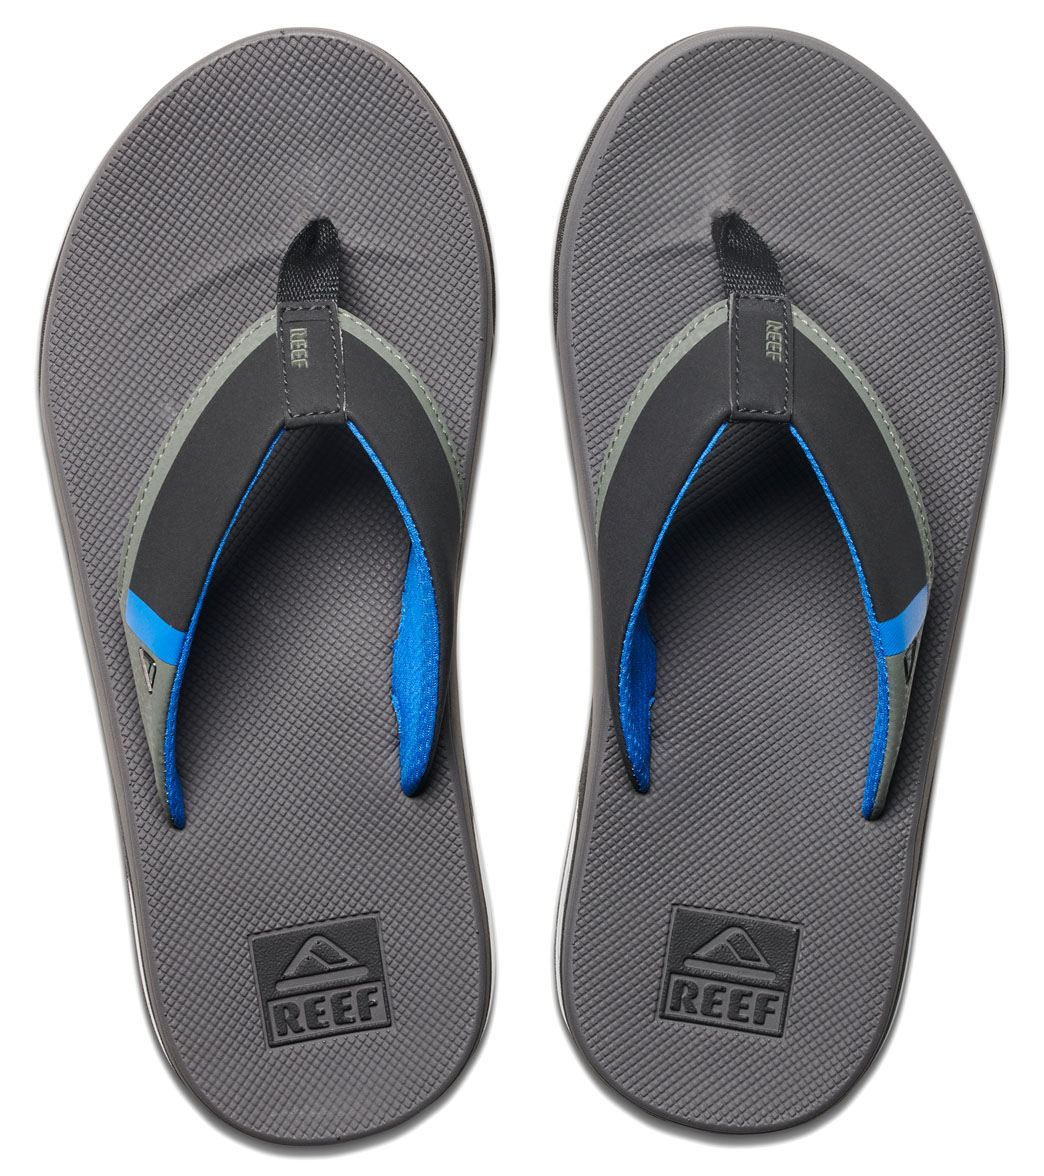 ea5949273745 Reef Men s Fanning Low Flip Flop at SwimOutlet.com - Free Shipping